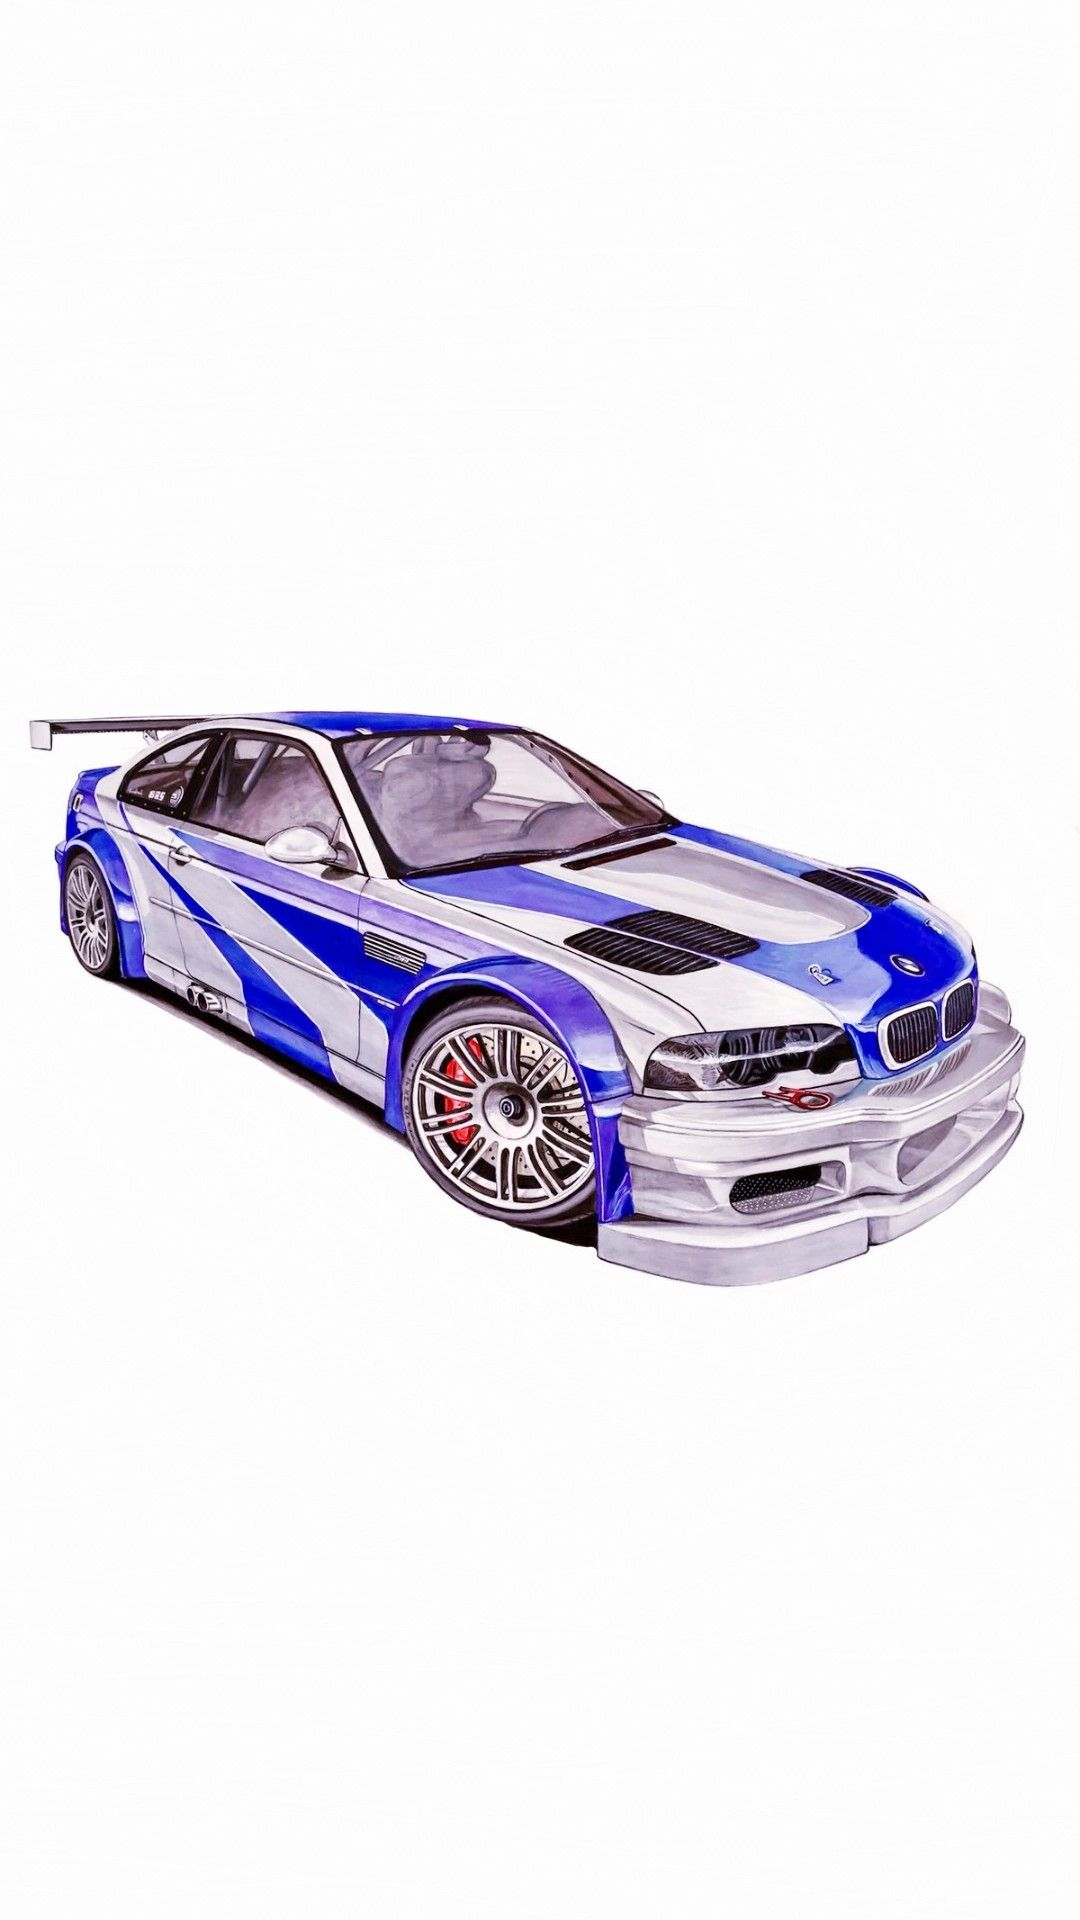 Need For Speed Most Wanted Bmw M3 Gtr Things I Wanna Draw